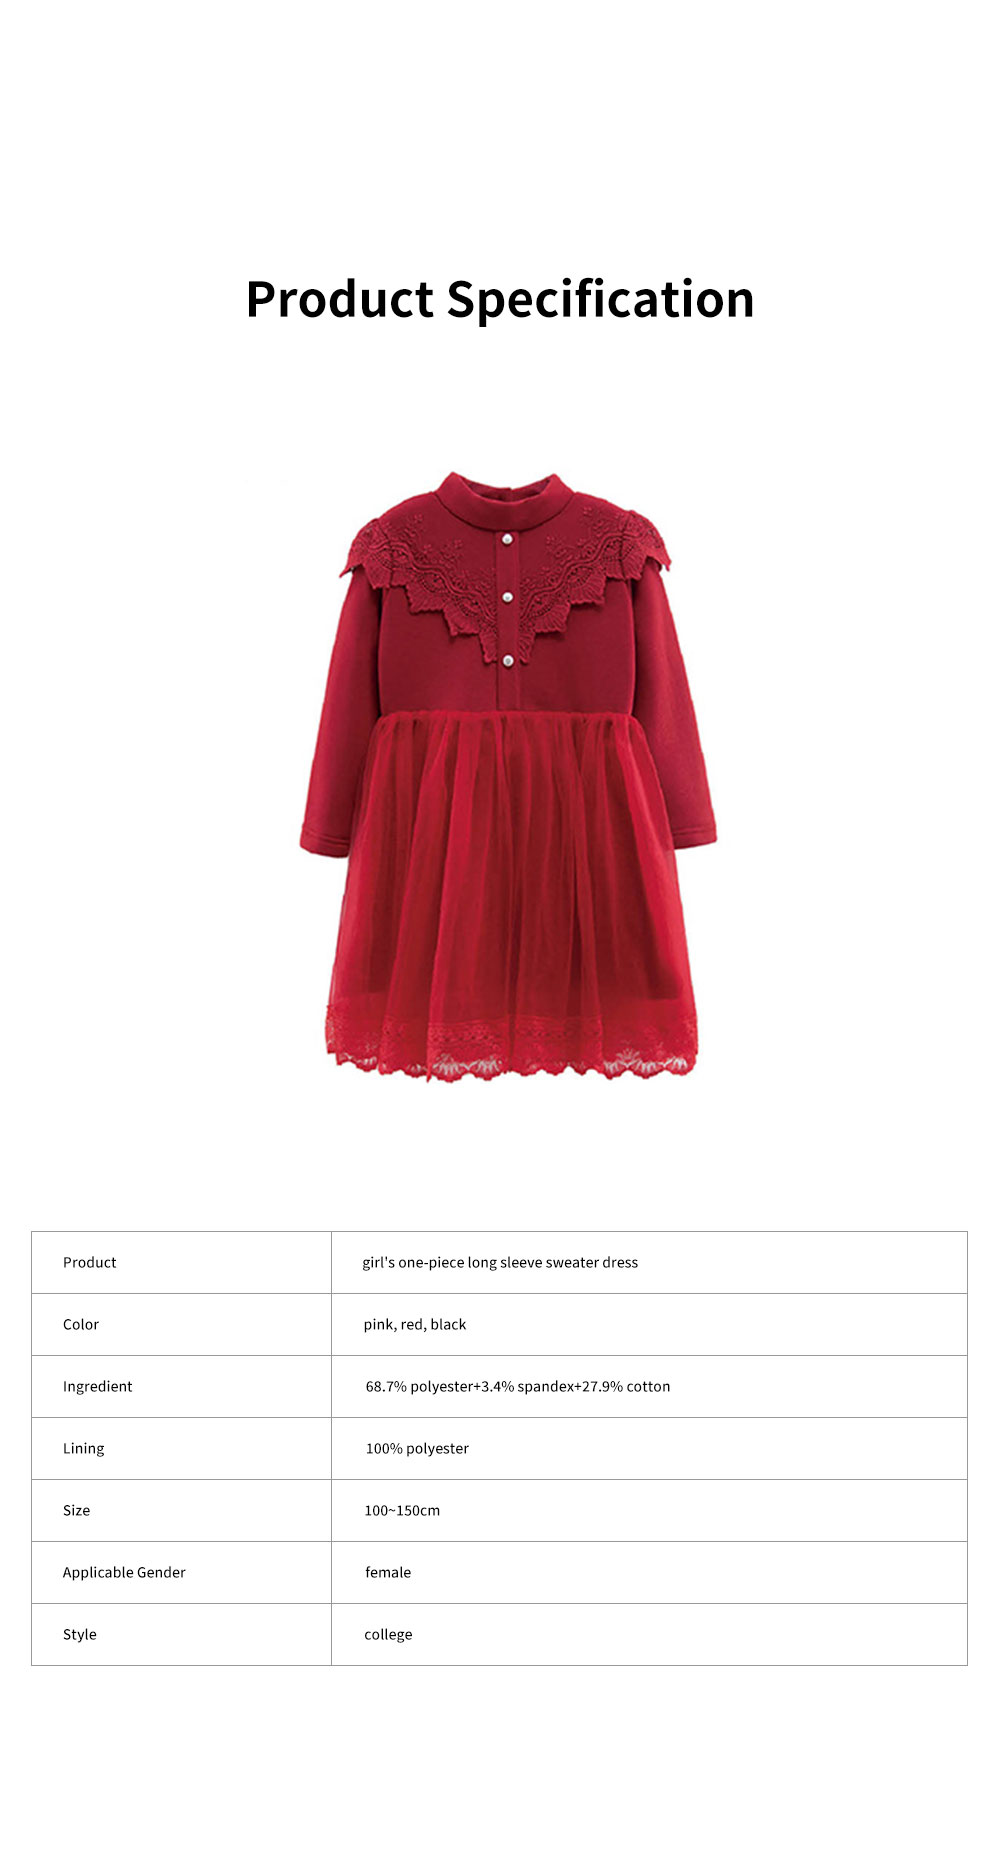 Warm Girl's One-piece Dress for Winter Autumn Fashion Grenadine Lace Princess Skirt with Buttons Pretty Long Sleeve Girls Dress 7